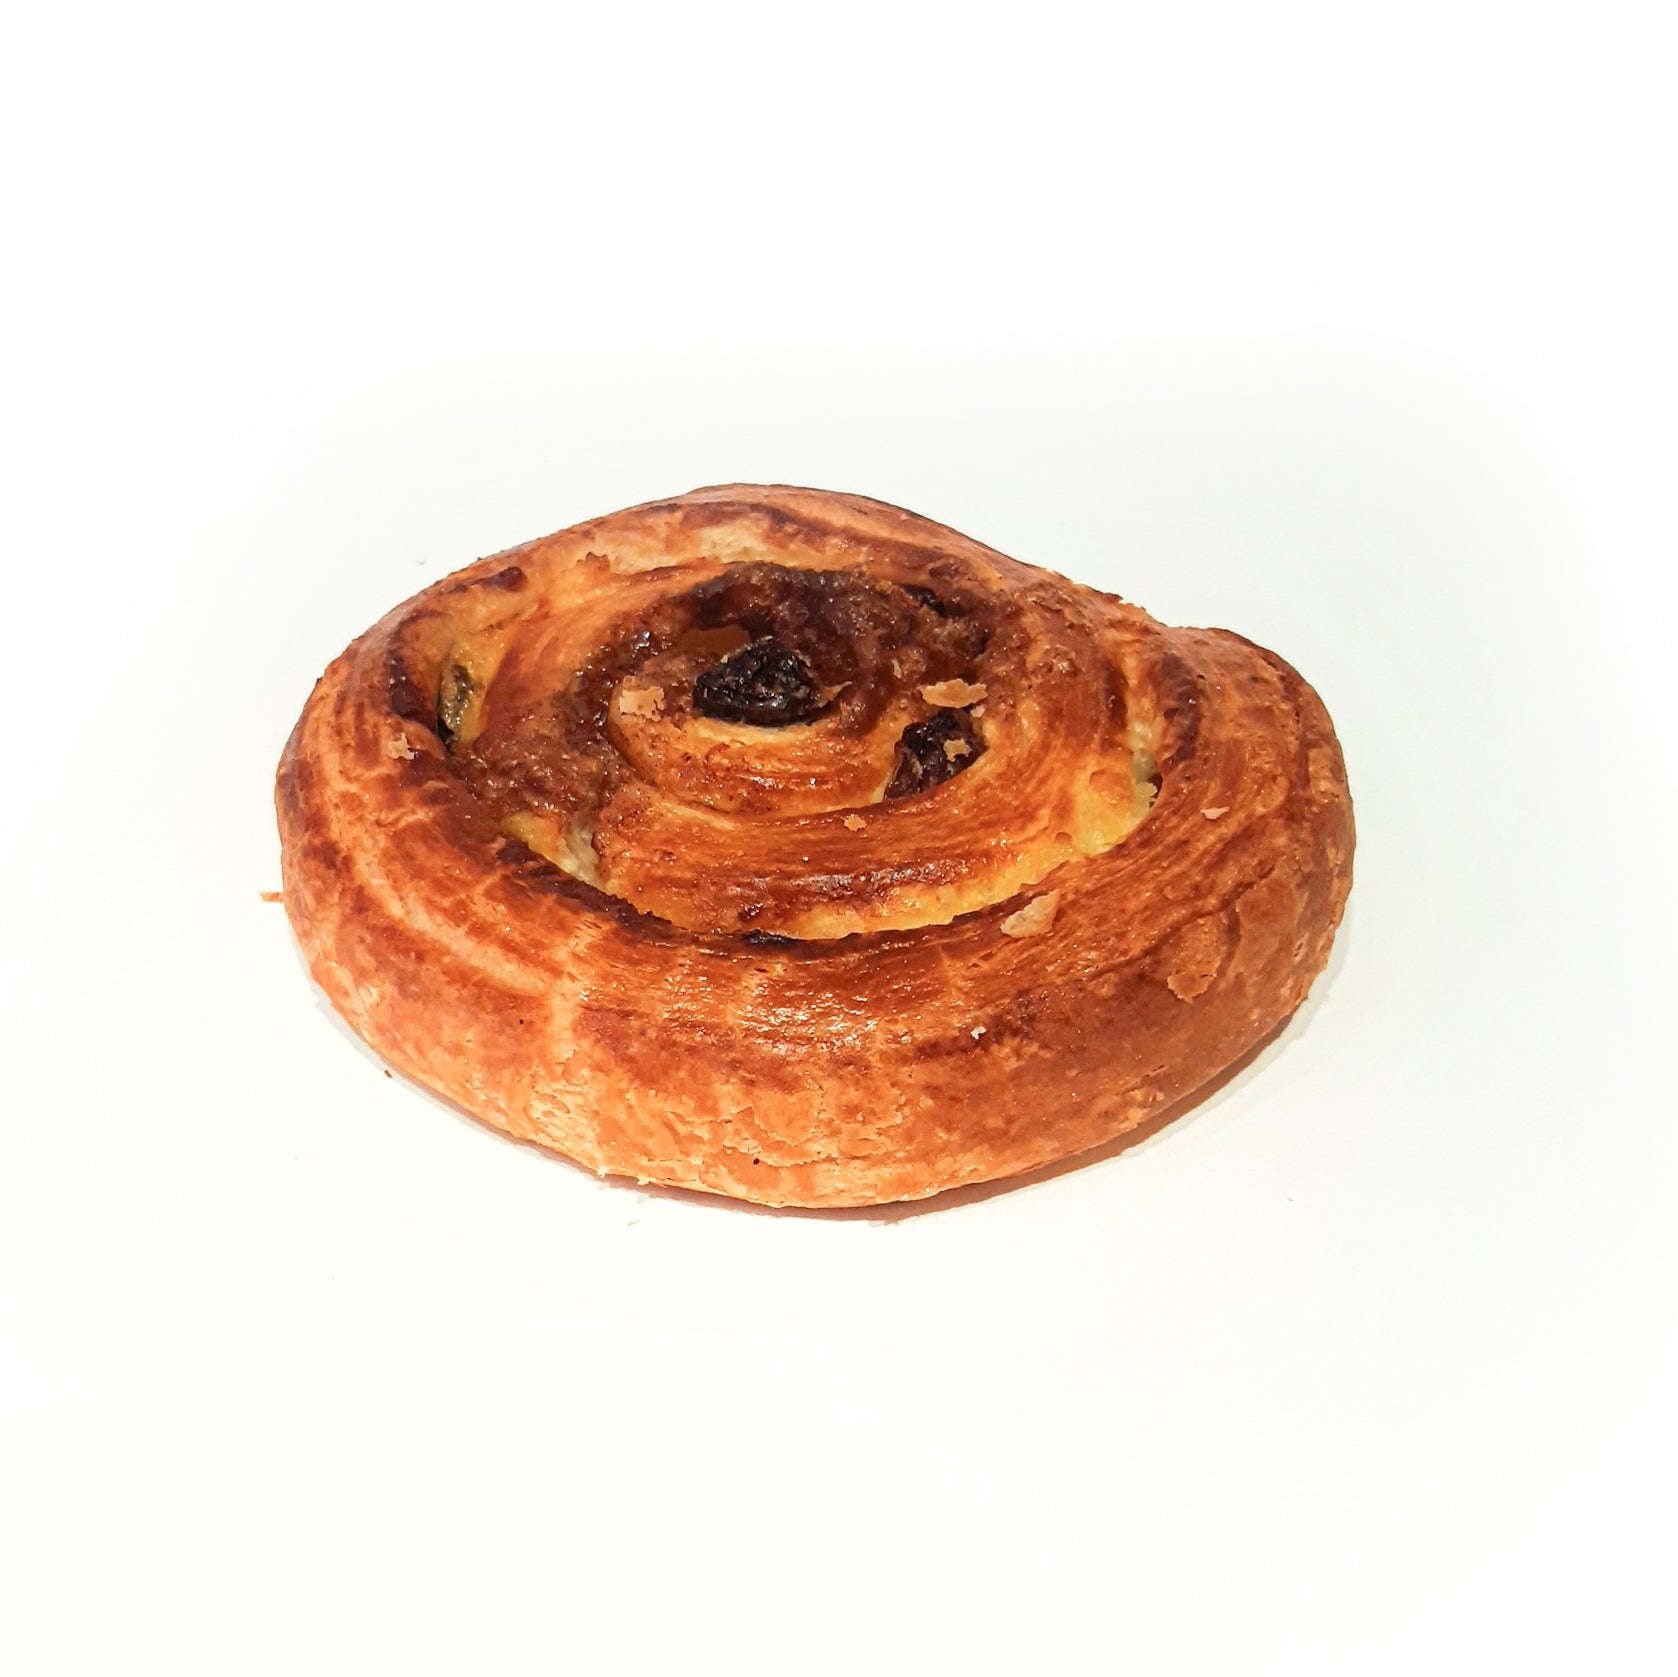 CINNAMON RAISIN DANISH